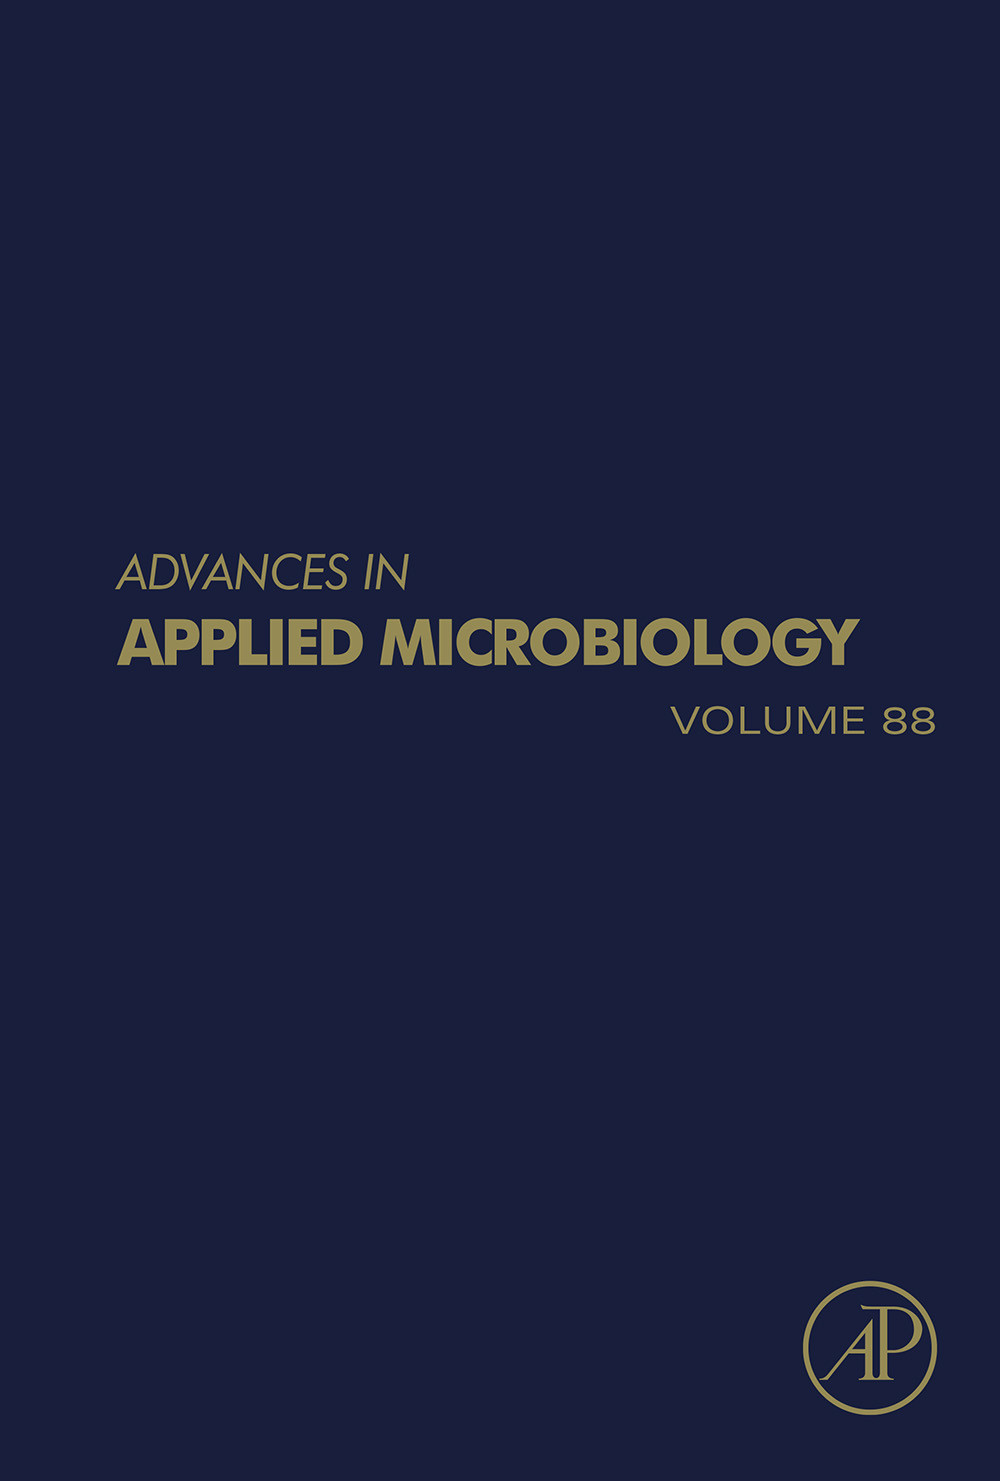 Advances in Applied Microbiology